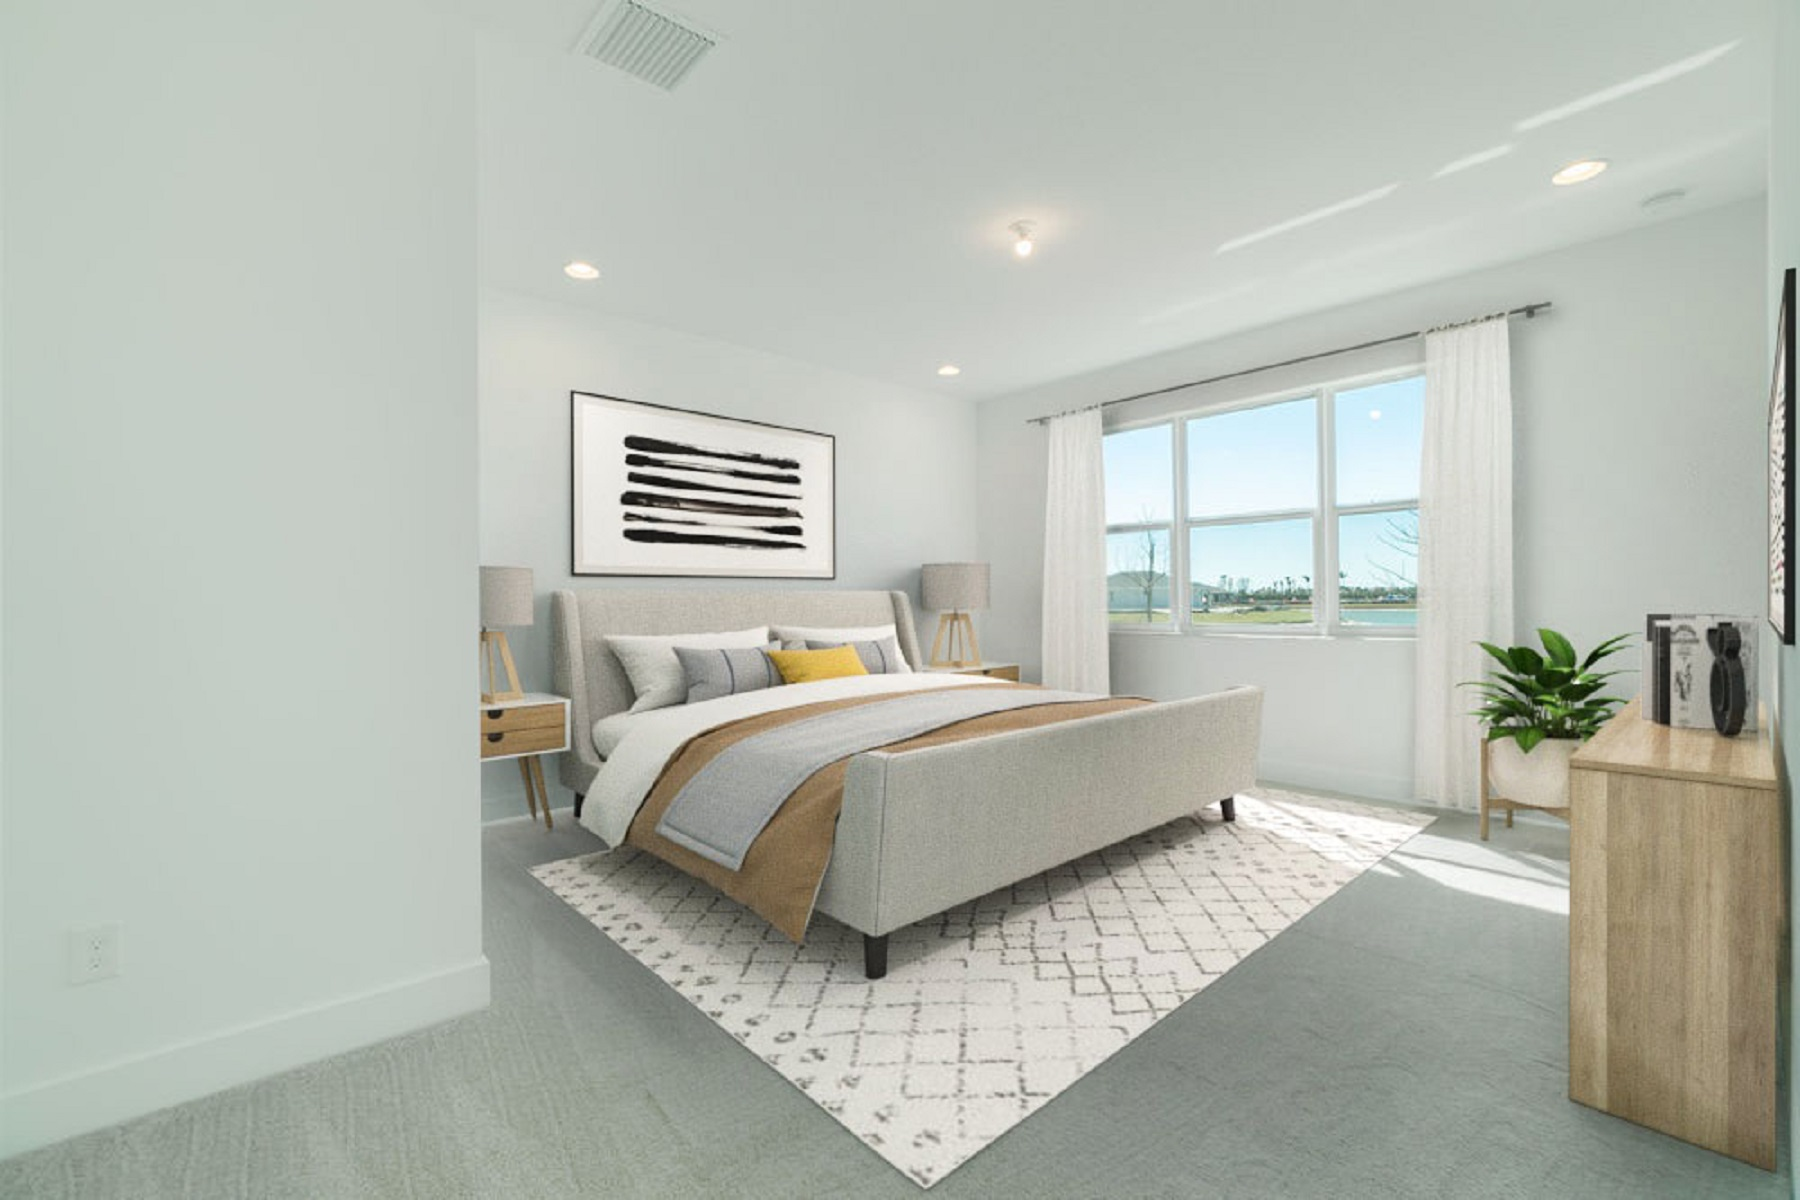 Bellflower Plan Bedroom at Tradition - Manderlie in Port St. Lucie Florida by Mattamy Homes